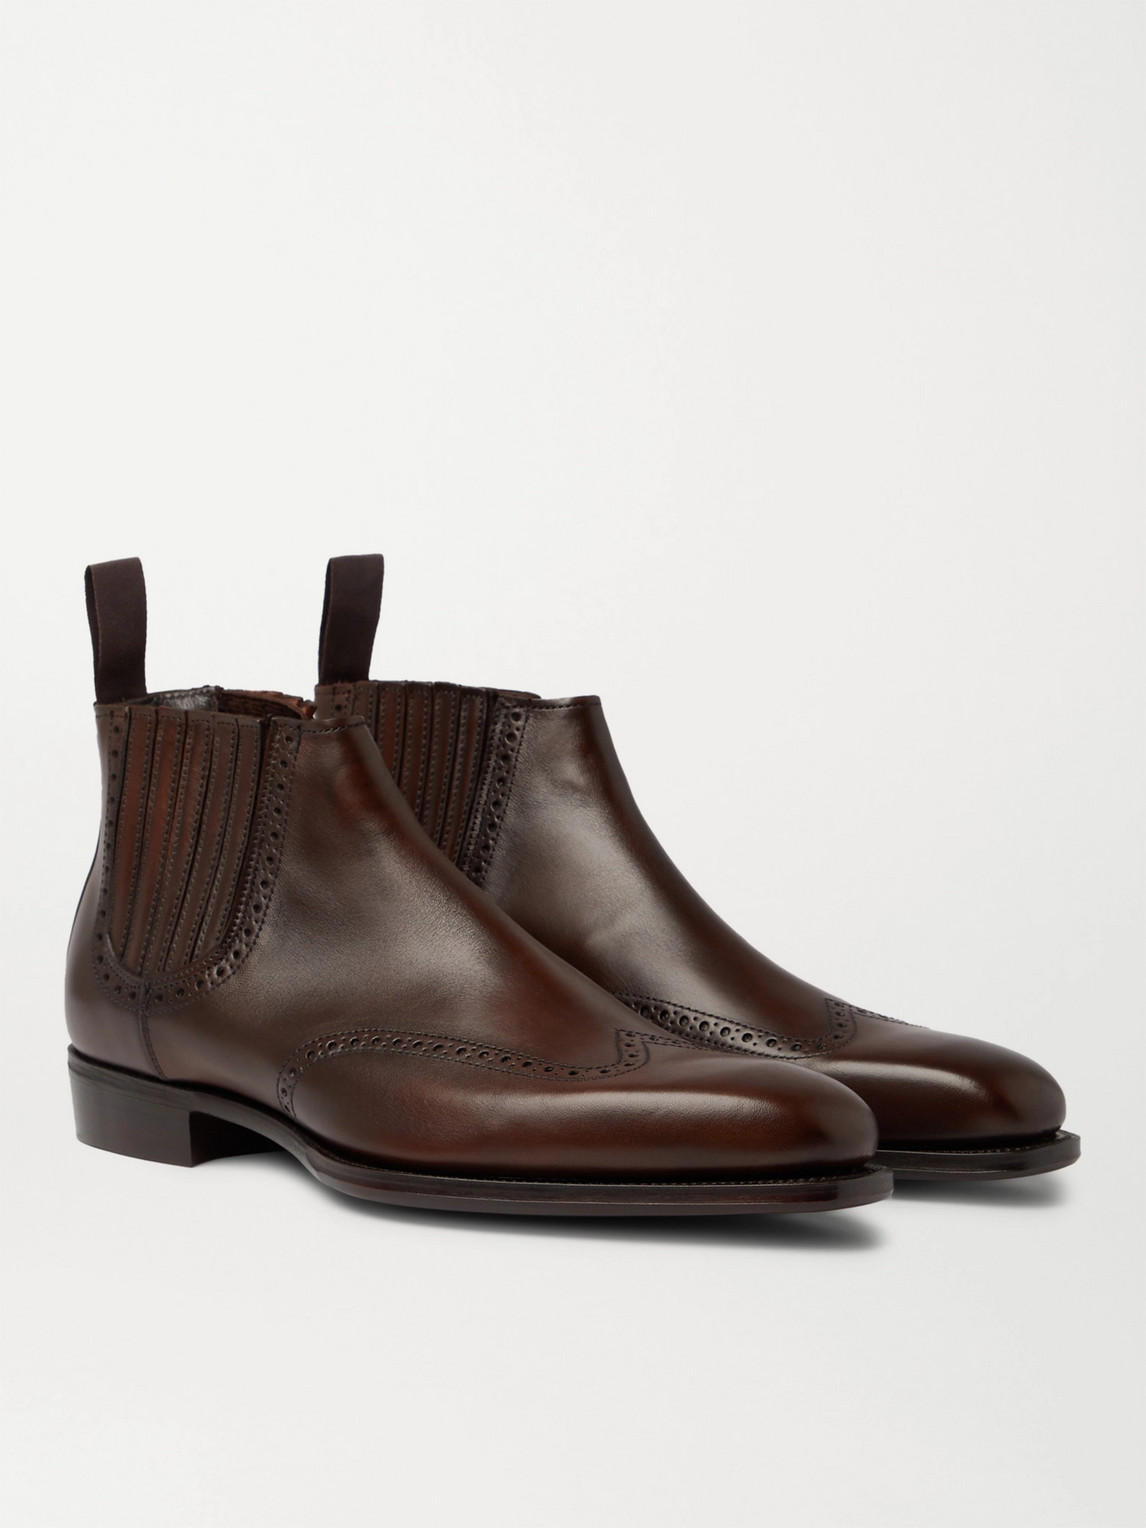 Kingsman George Cleverley Veronique Leather Brogue Chelsea Boots In Brown